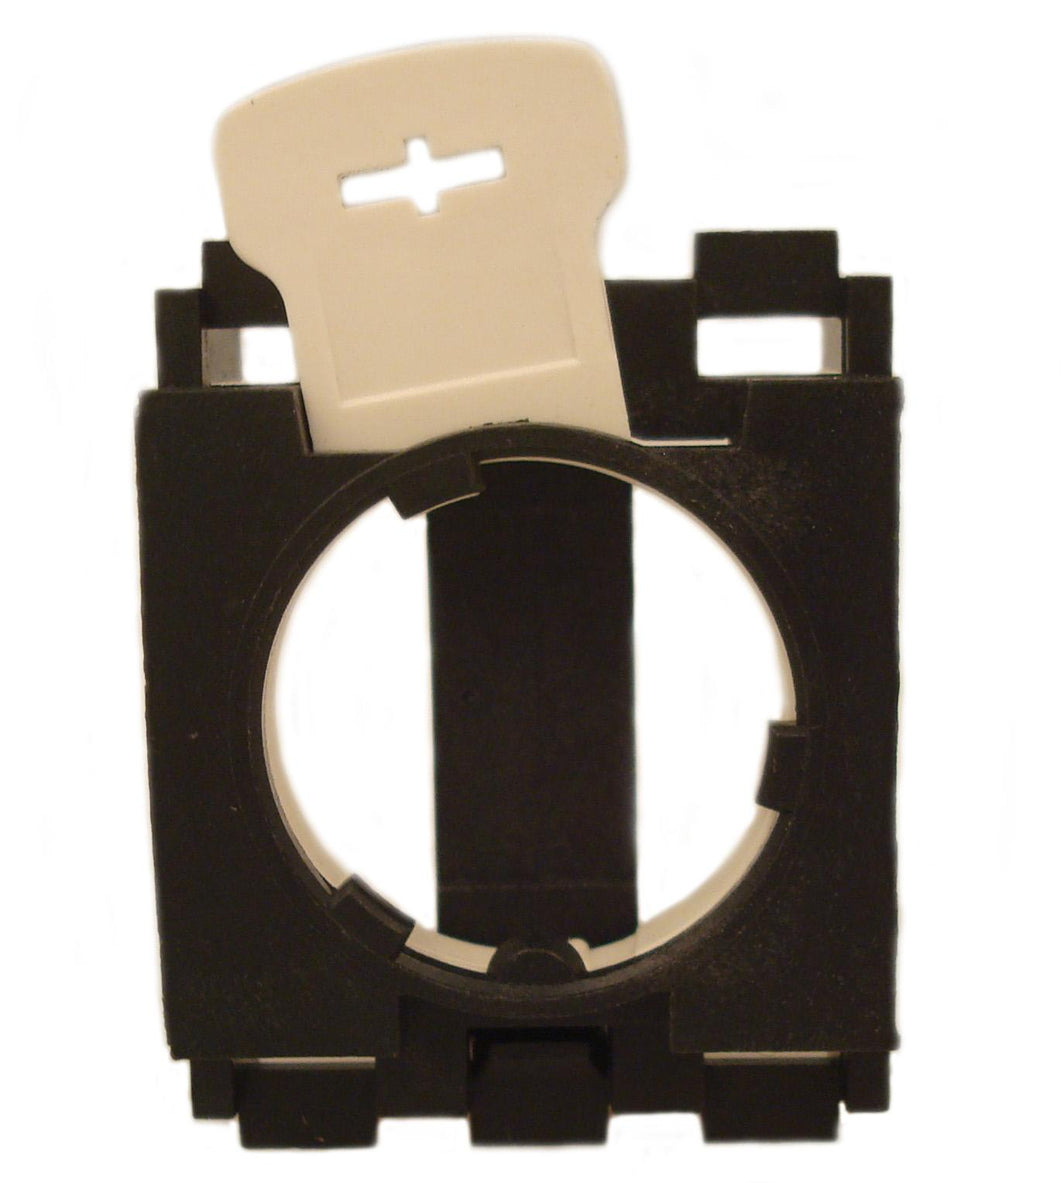 Eaton E22BA1 30mm Contact Block Holder for 22mm, E22 Eaton E22BA1